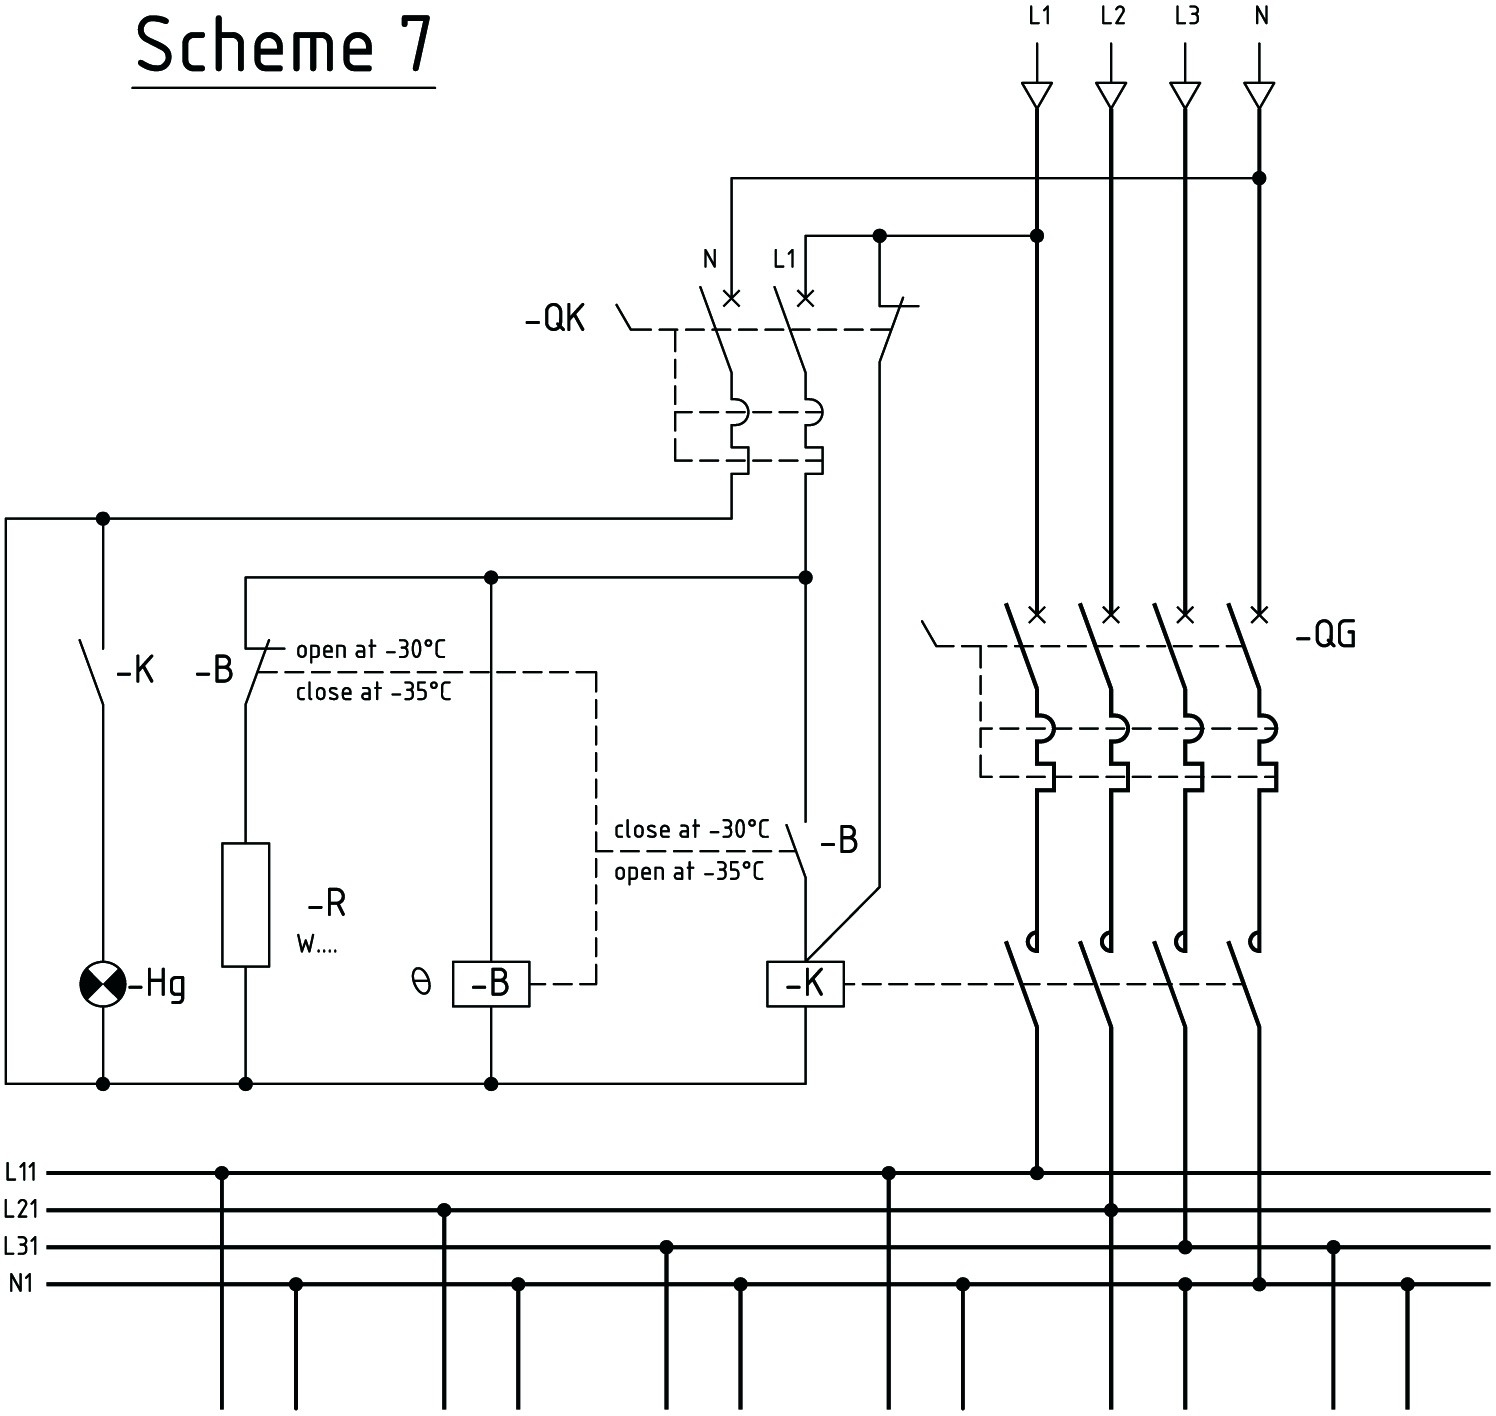 schneider electric contactor wiring diagram Collection-Ls Contactor Wiring Diagram Inspirationa Schneider Electric Contactor Wiring Diagram 12-e